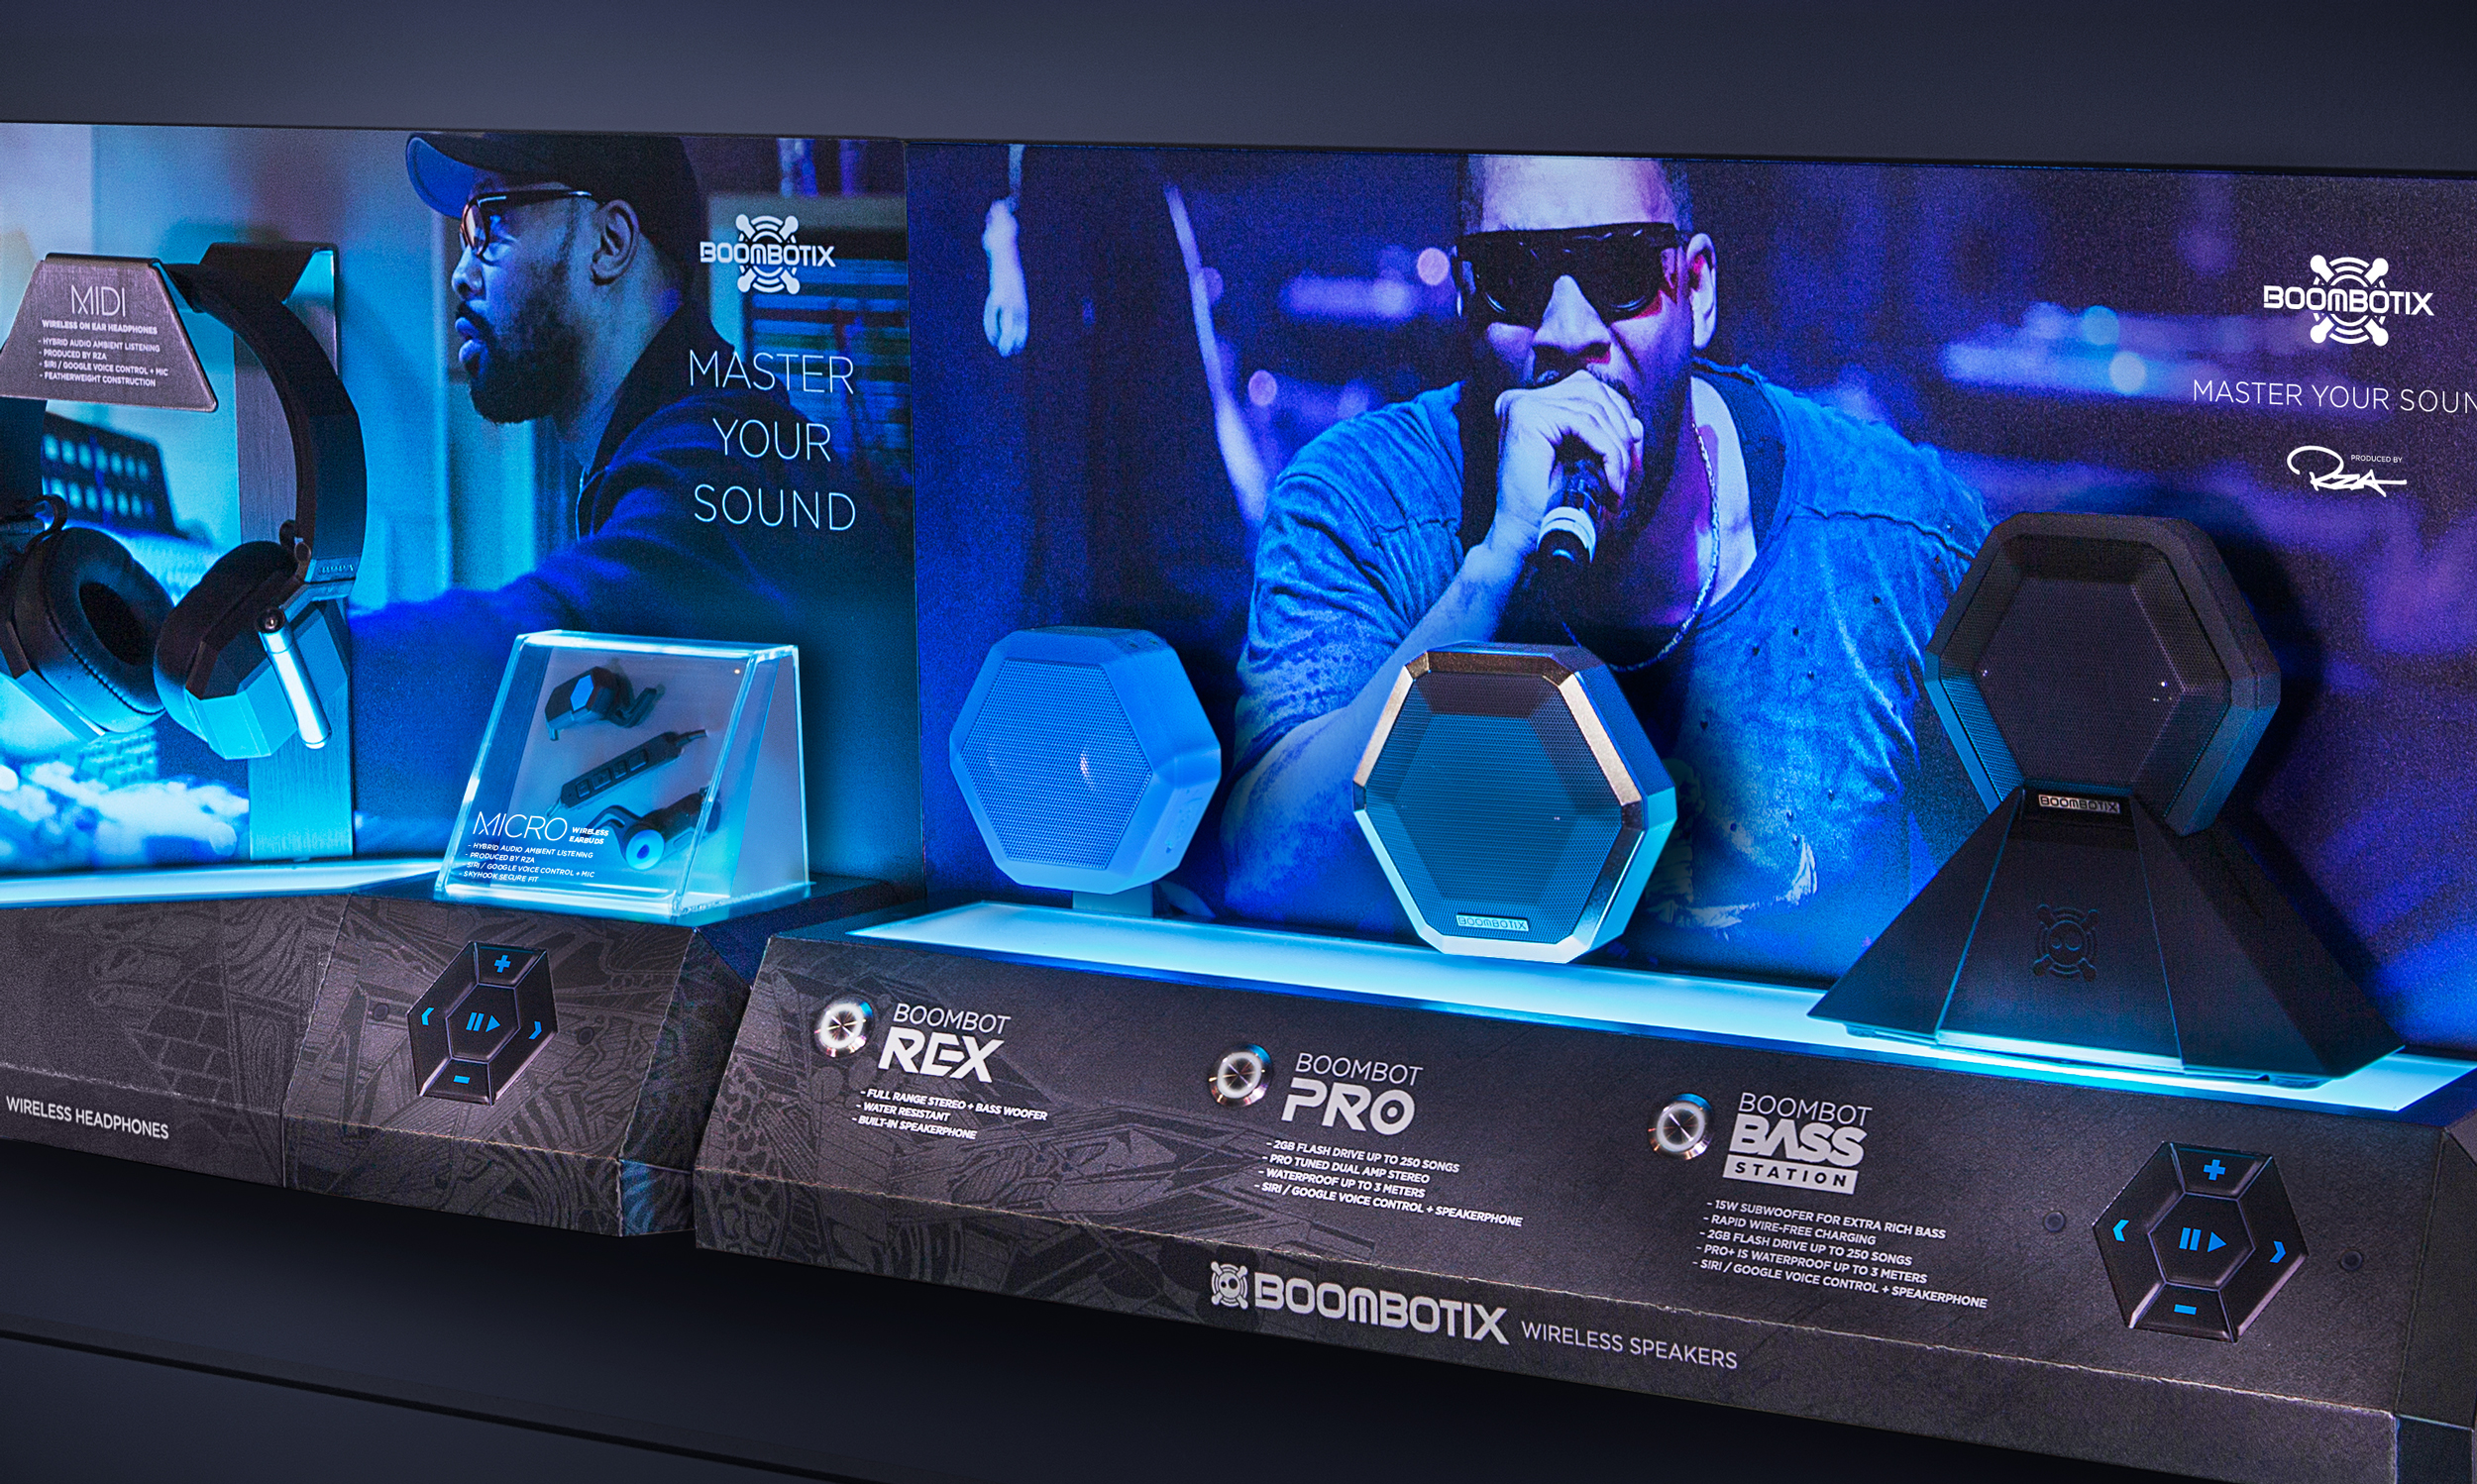 Product display of RZA edition speaker products